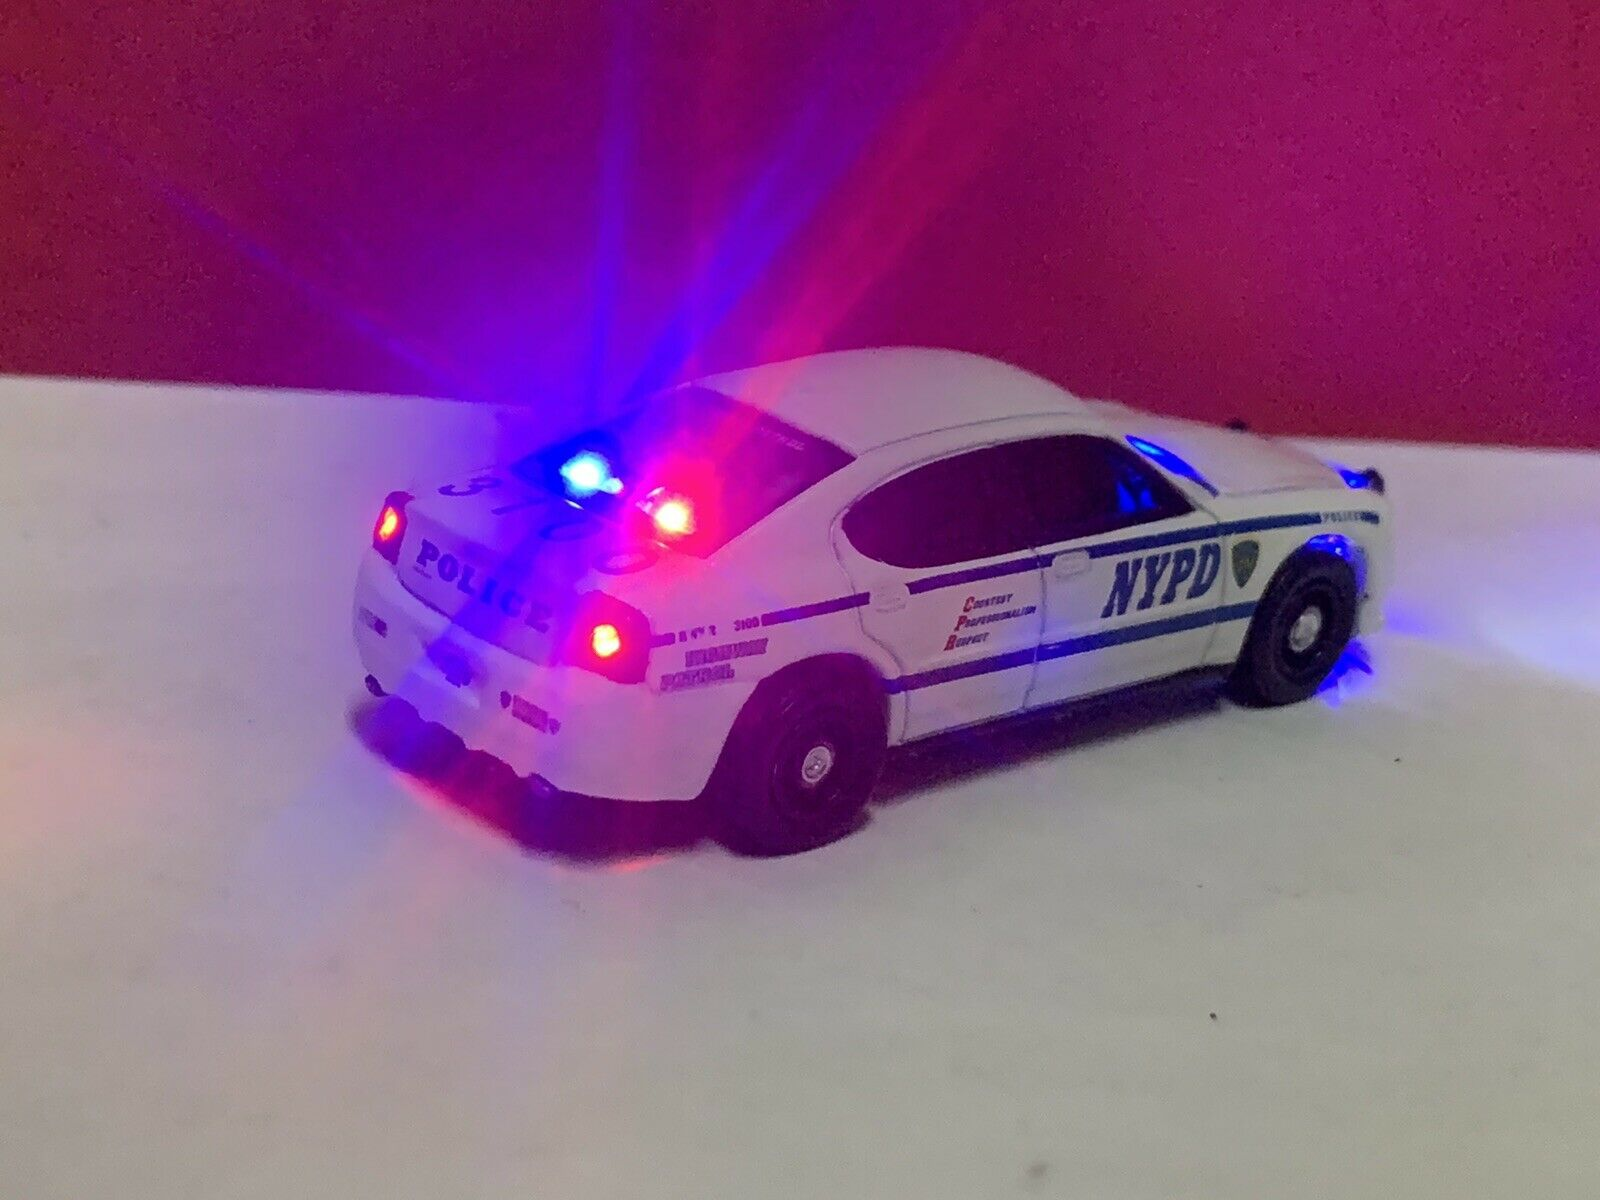 Custom 1 64 Scale Police Car With Working Led Lights Car Diecast Charger For Sale Online Ebay